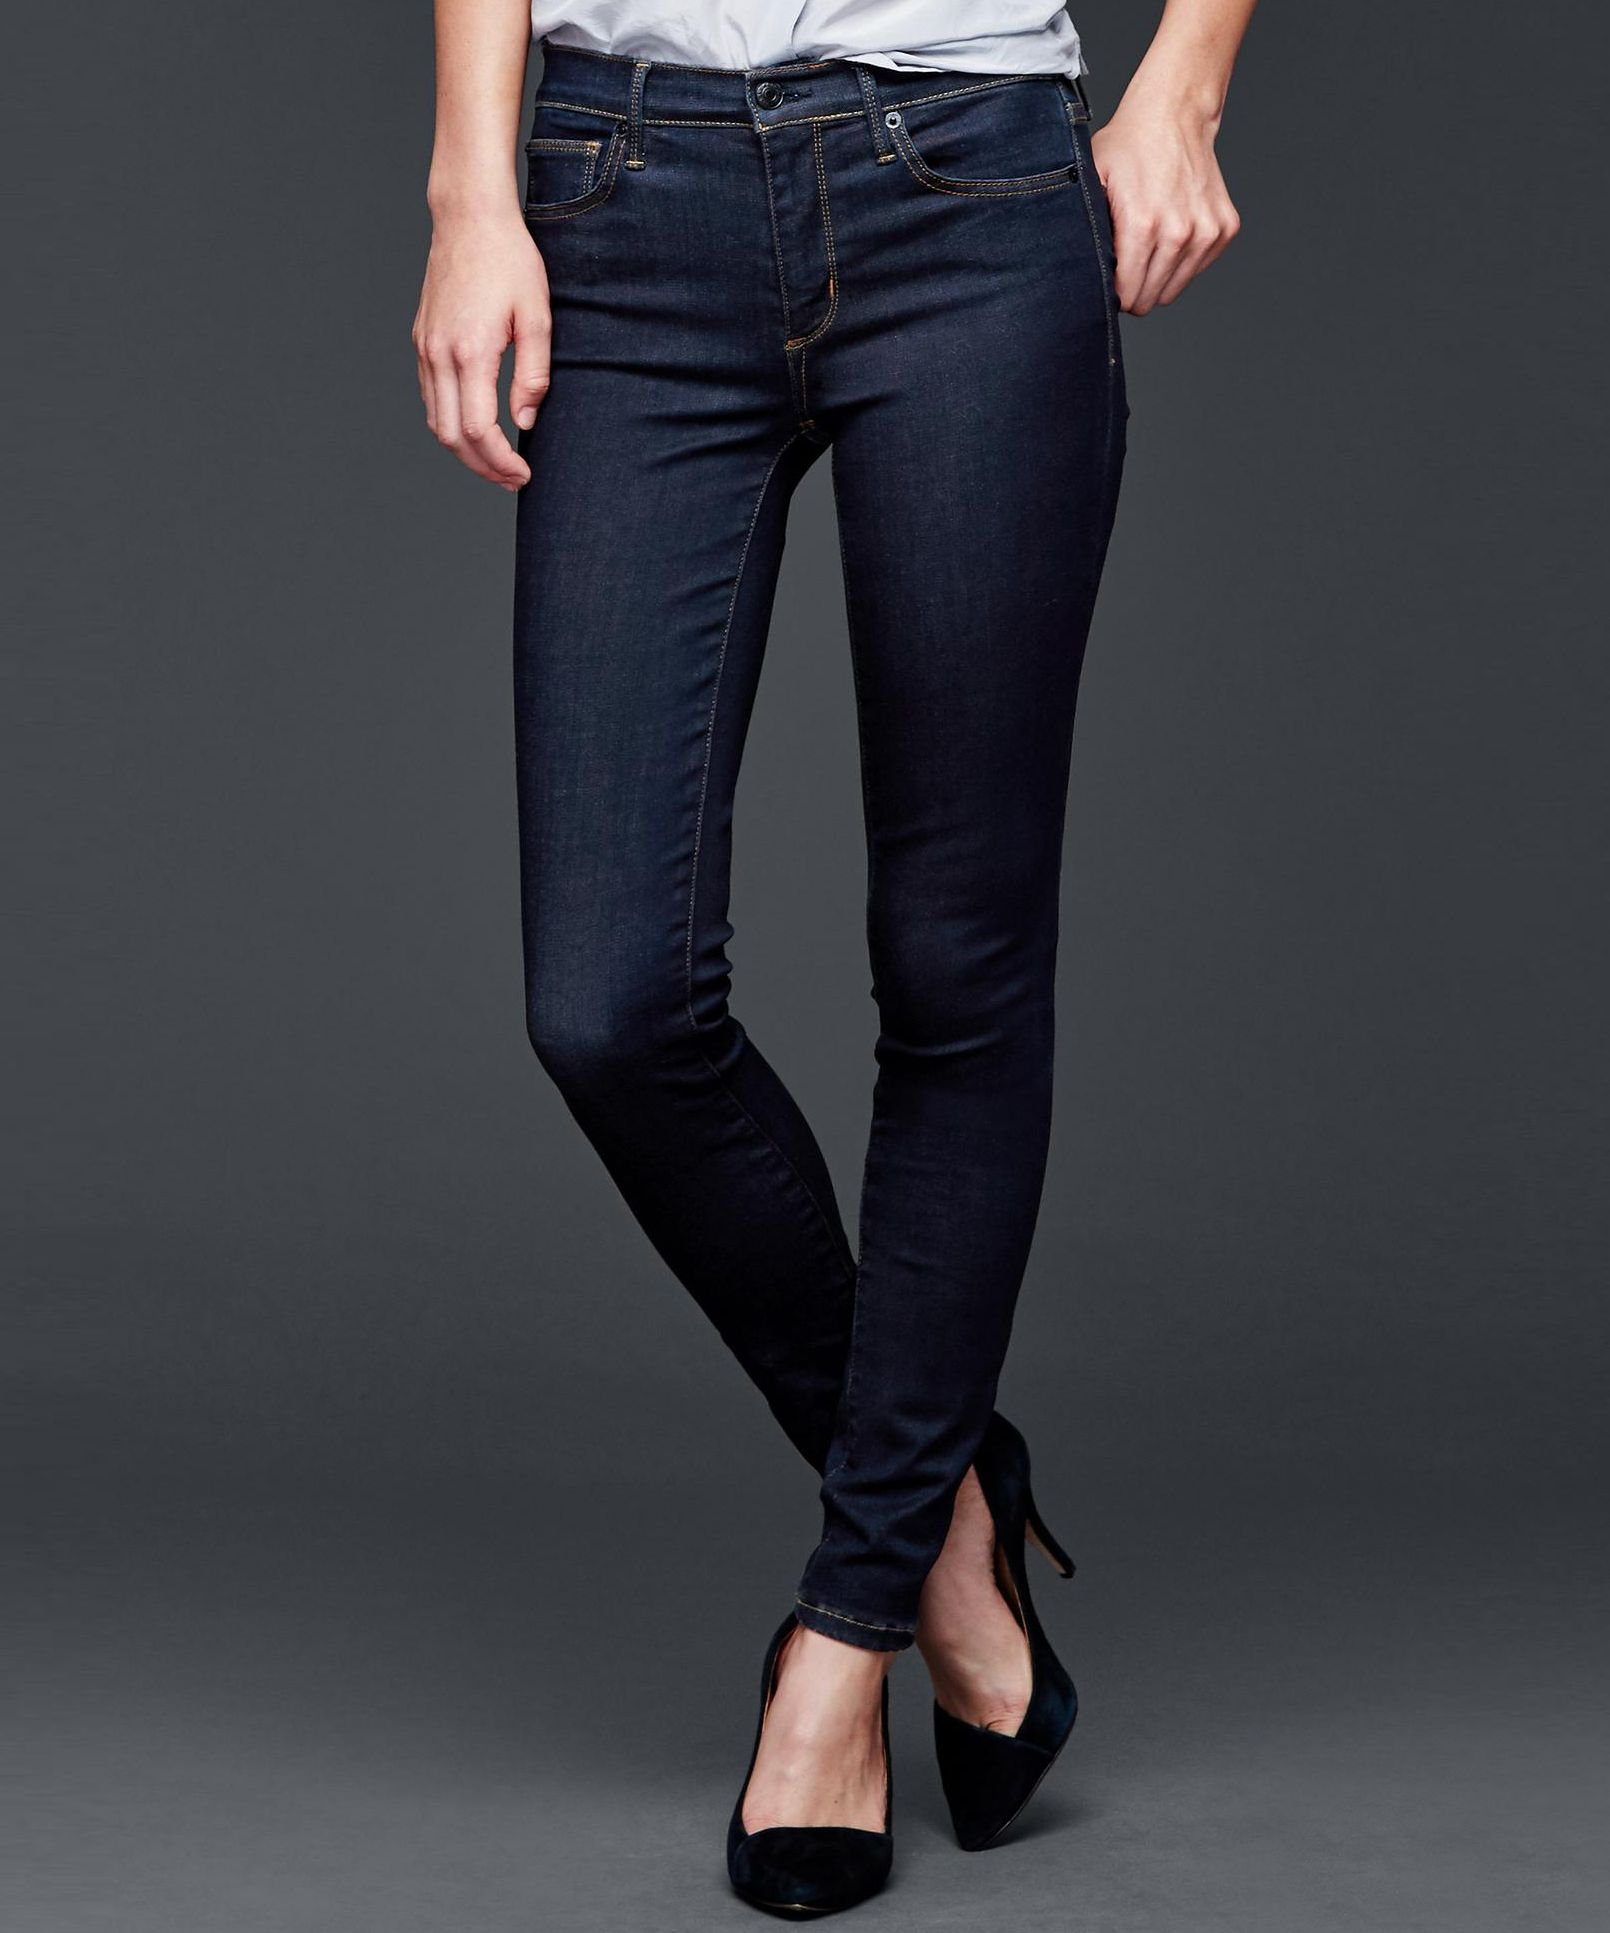 A Guide to the Best Jeans for Big Butts  - Gap 'High Stretch 1969 True Skinny' jeans / Gap Authentic 1969 Perfect Boot Jeans